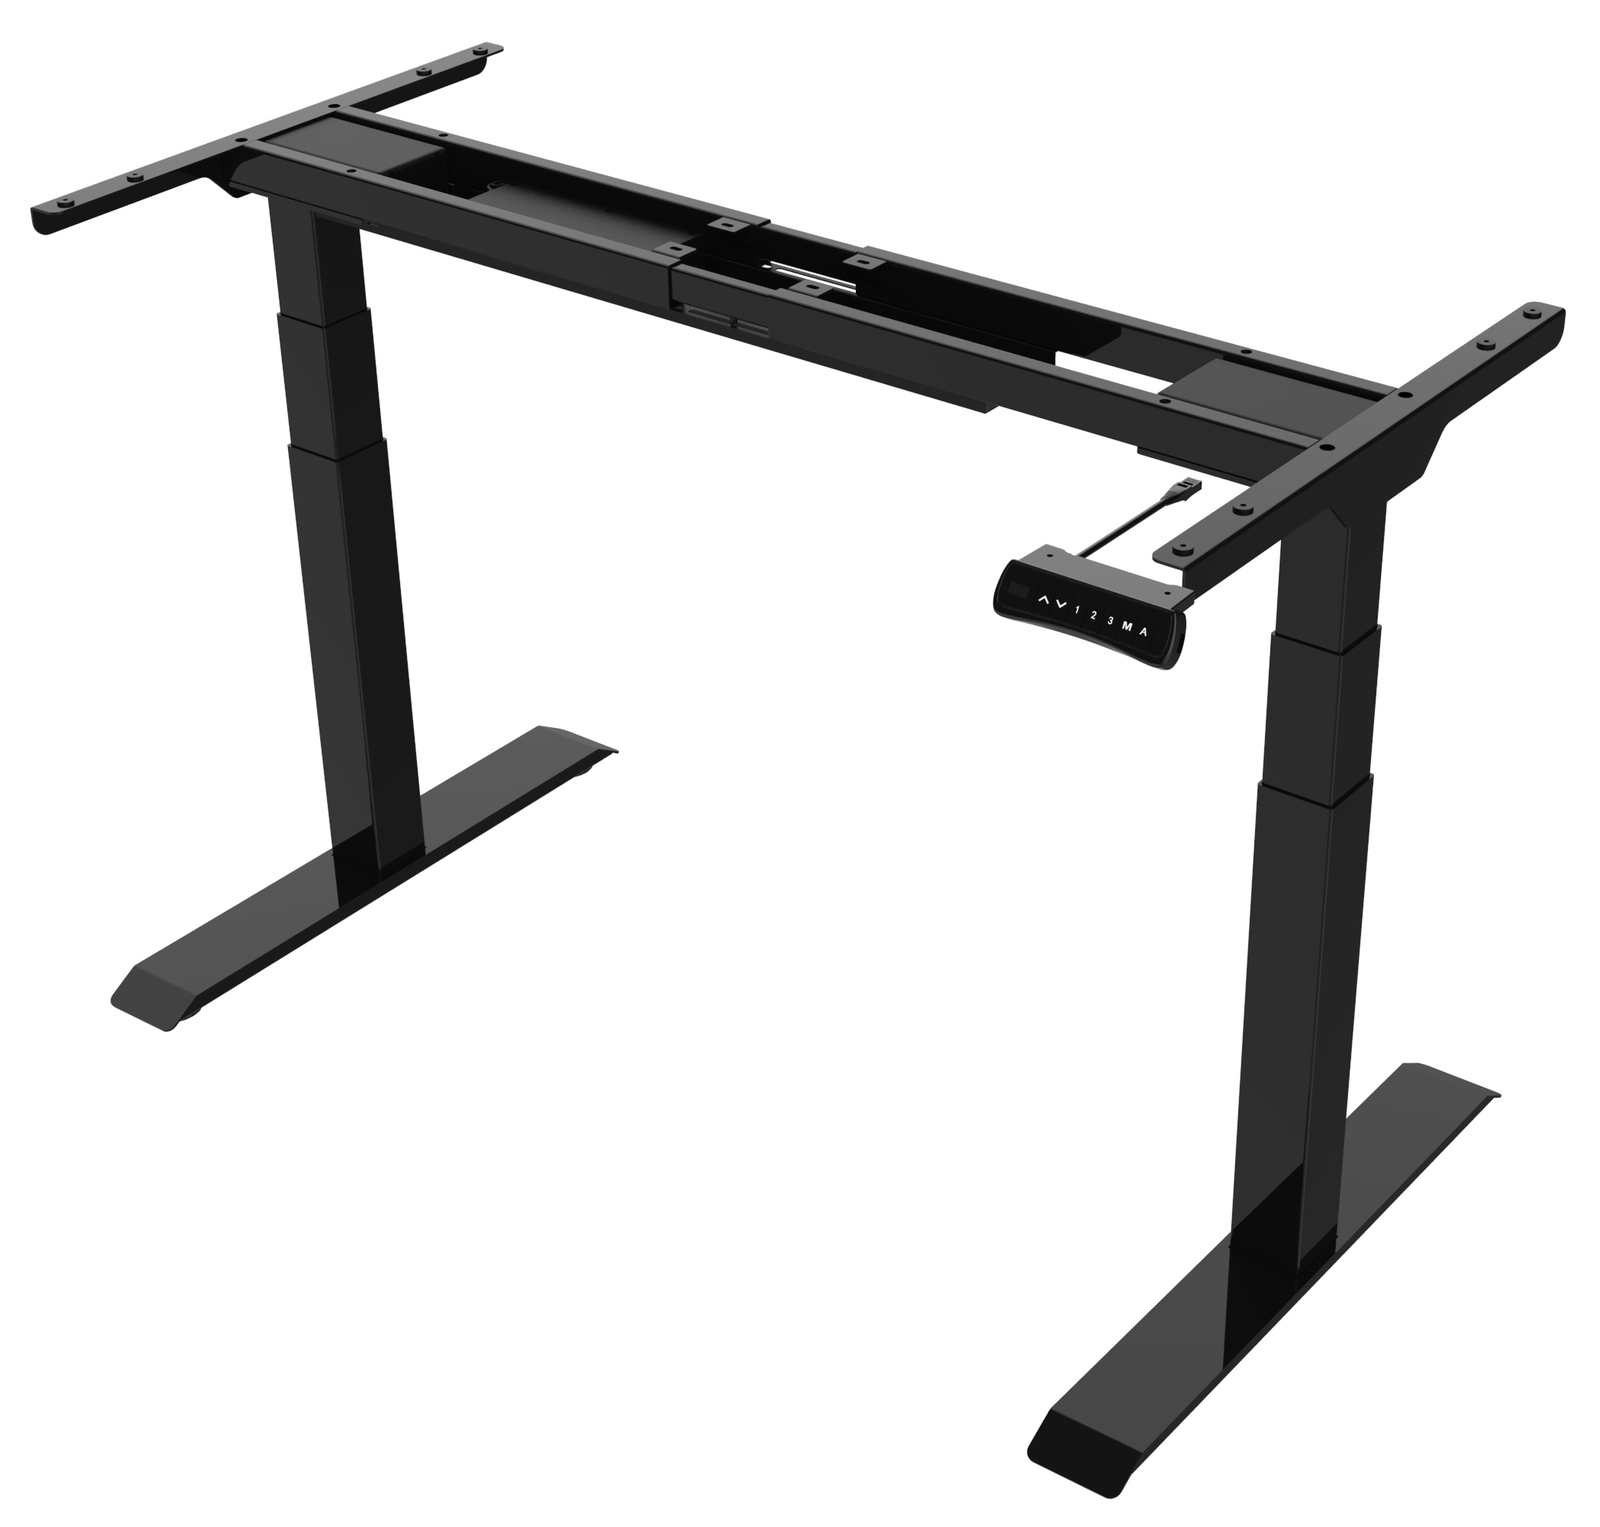 Gorilla Office: 3-Stage Motorised Height Adjustable Desk - Black/Black (1800 x 800mm) image